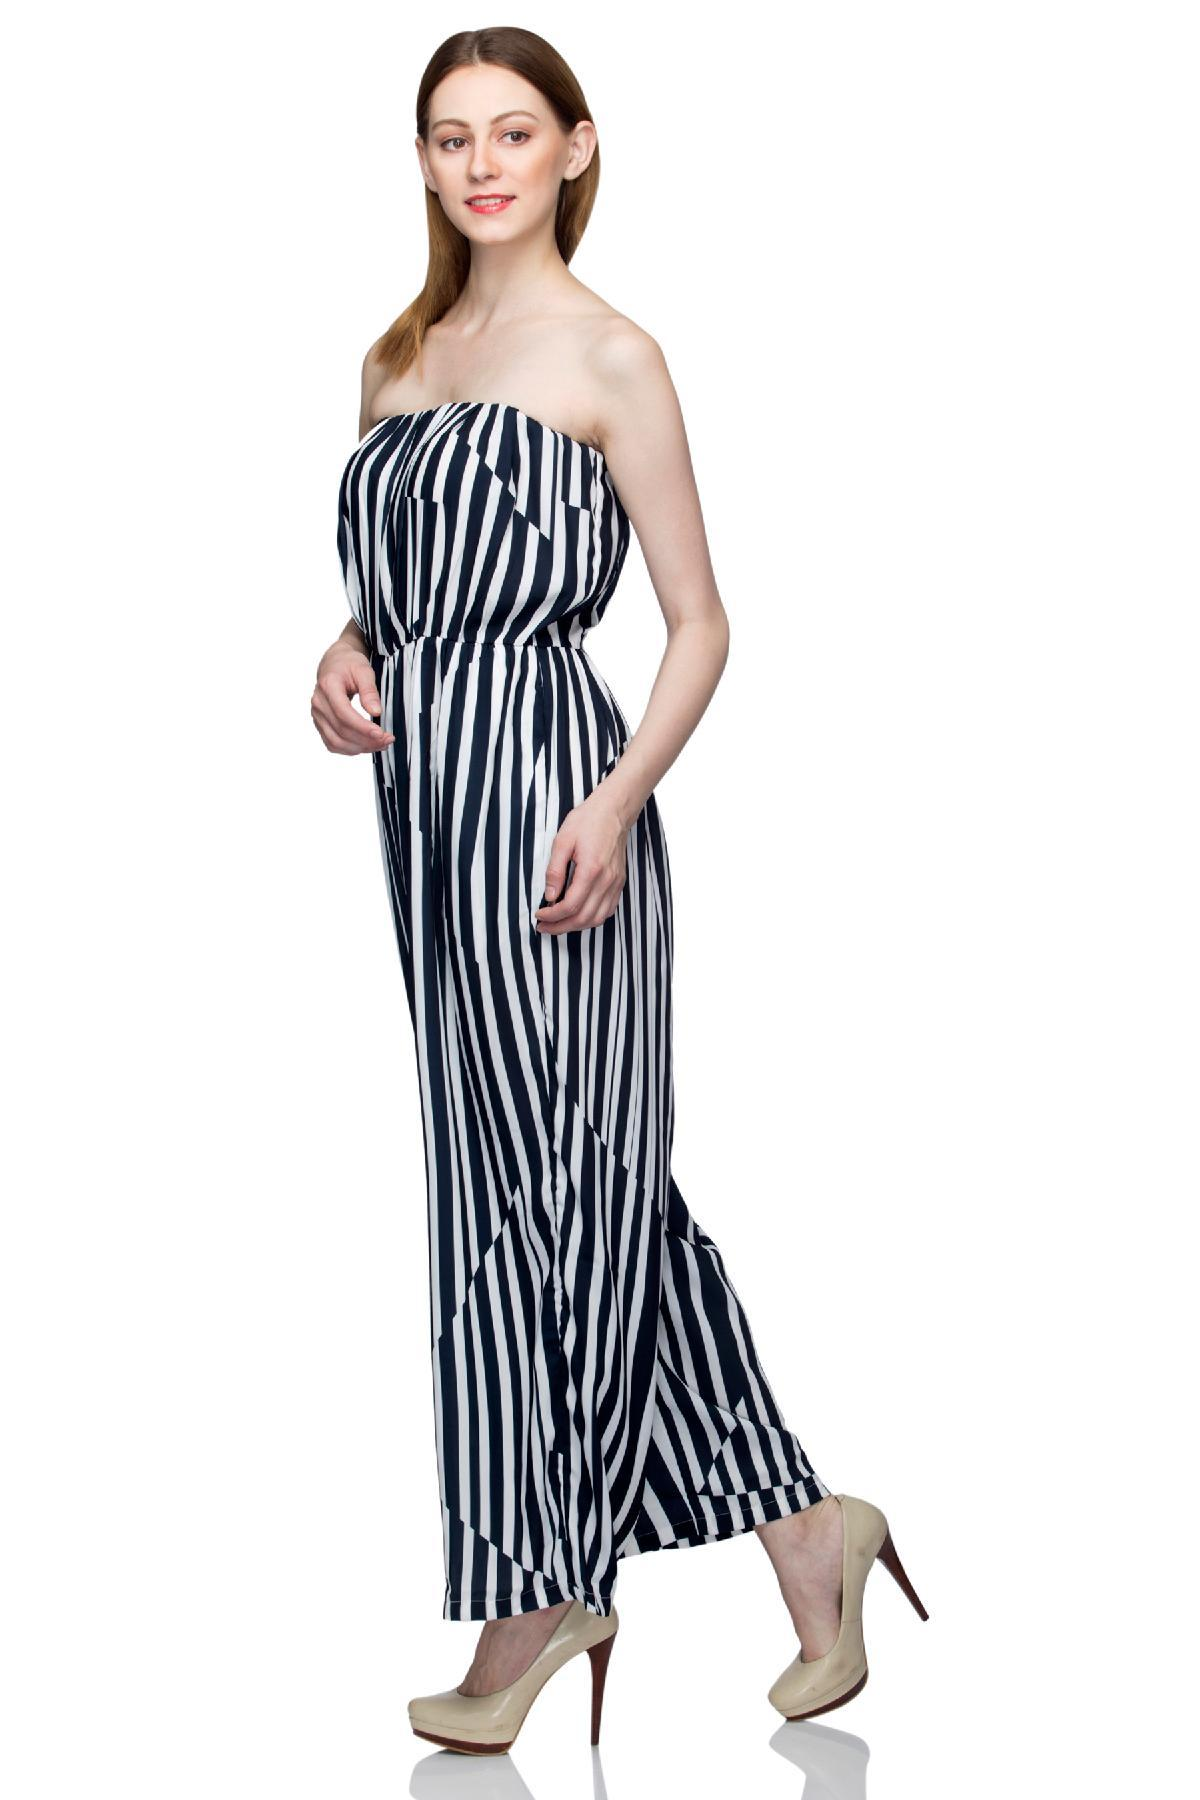 b770221b841 Black   White Tube Jumpsuit by United Colors of Benetton for rent ...